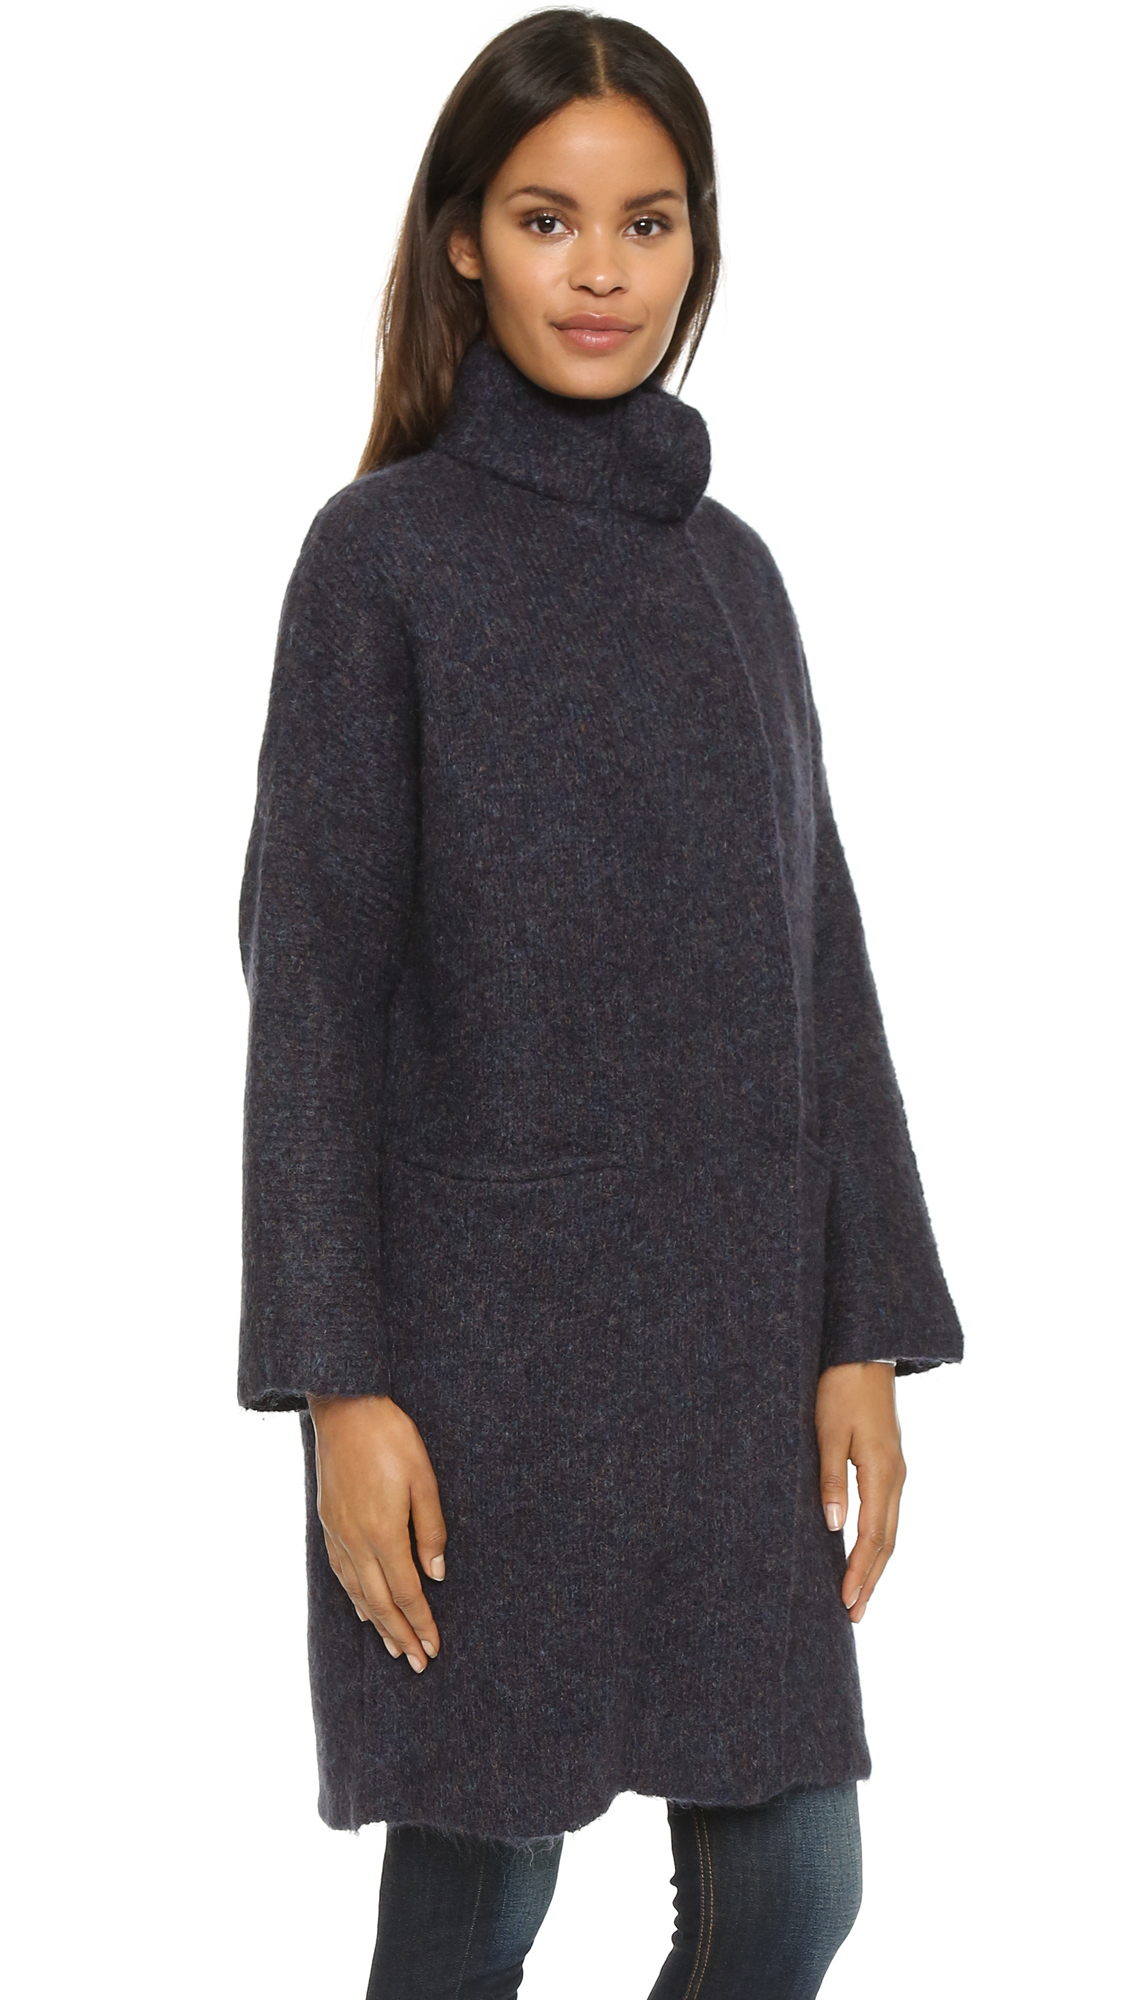 Rag & bone Cammie Sweater Coat - Navy in Blue | Lyst